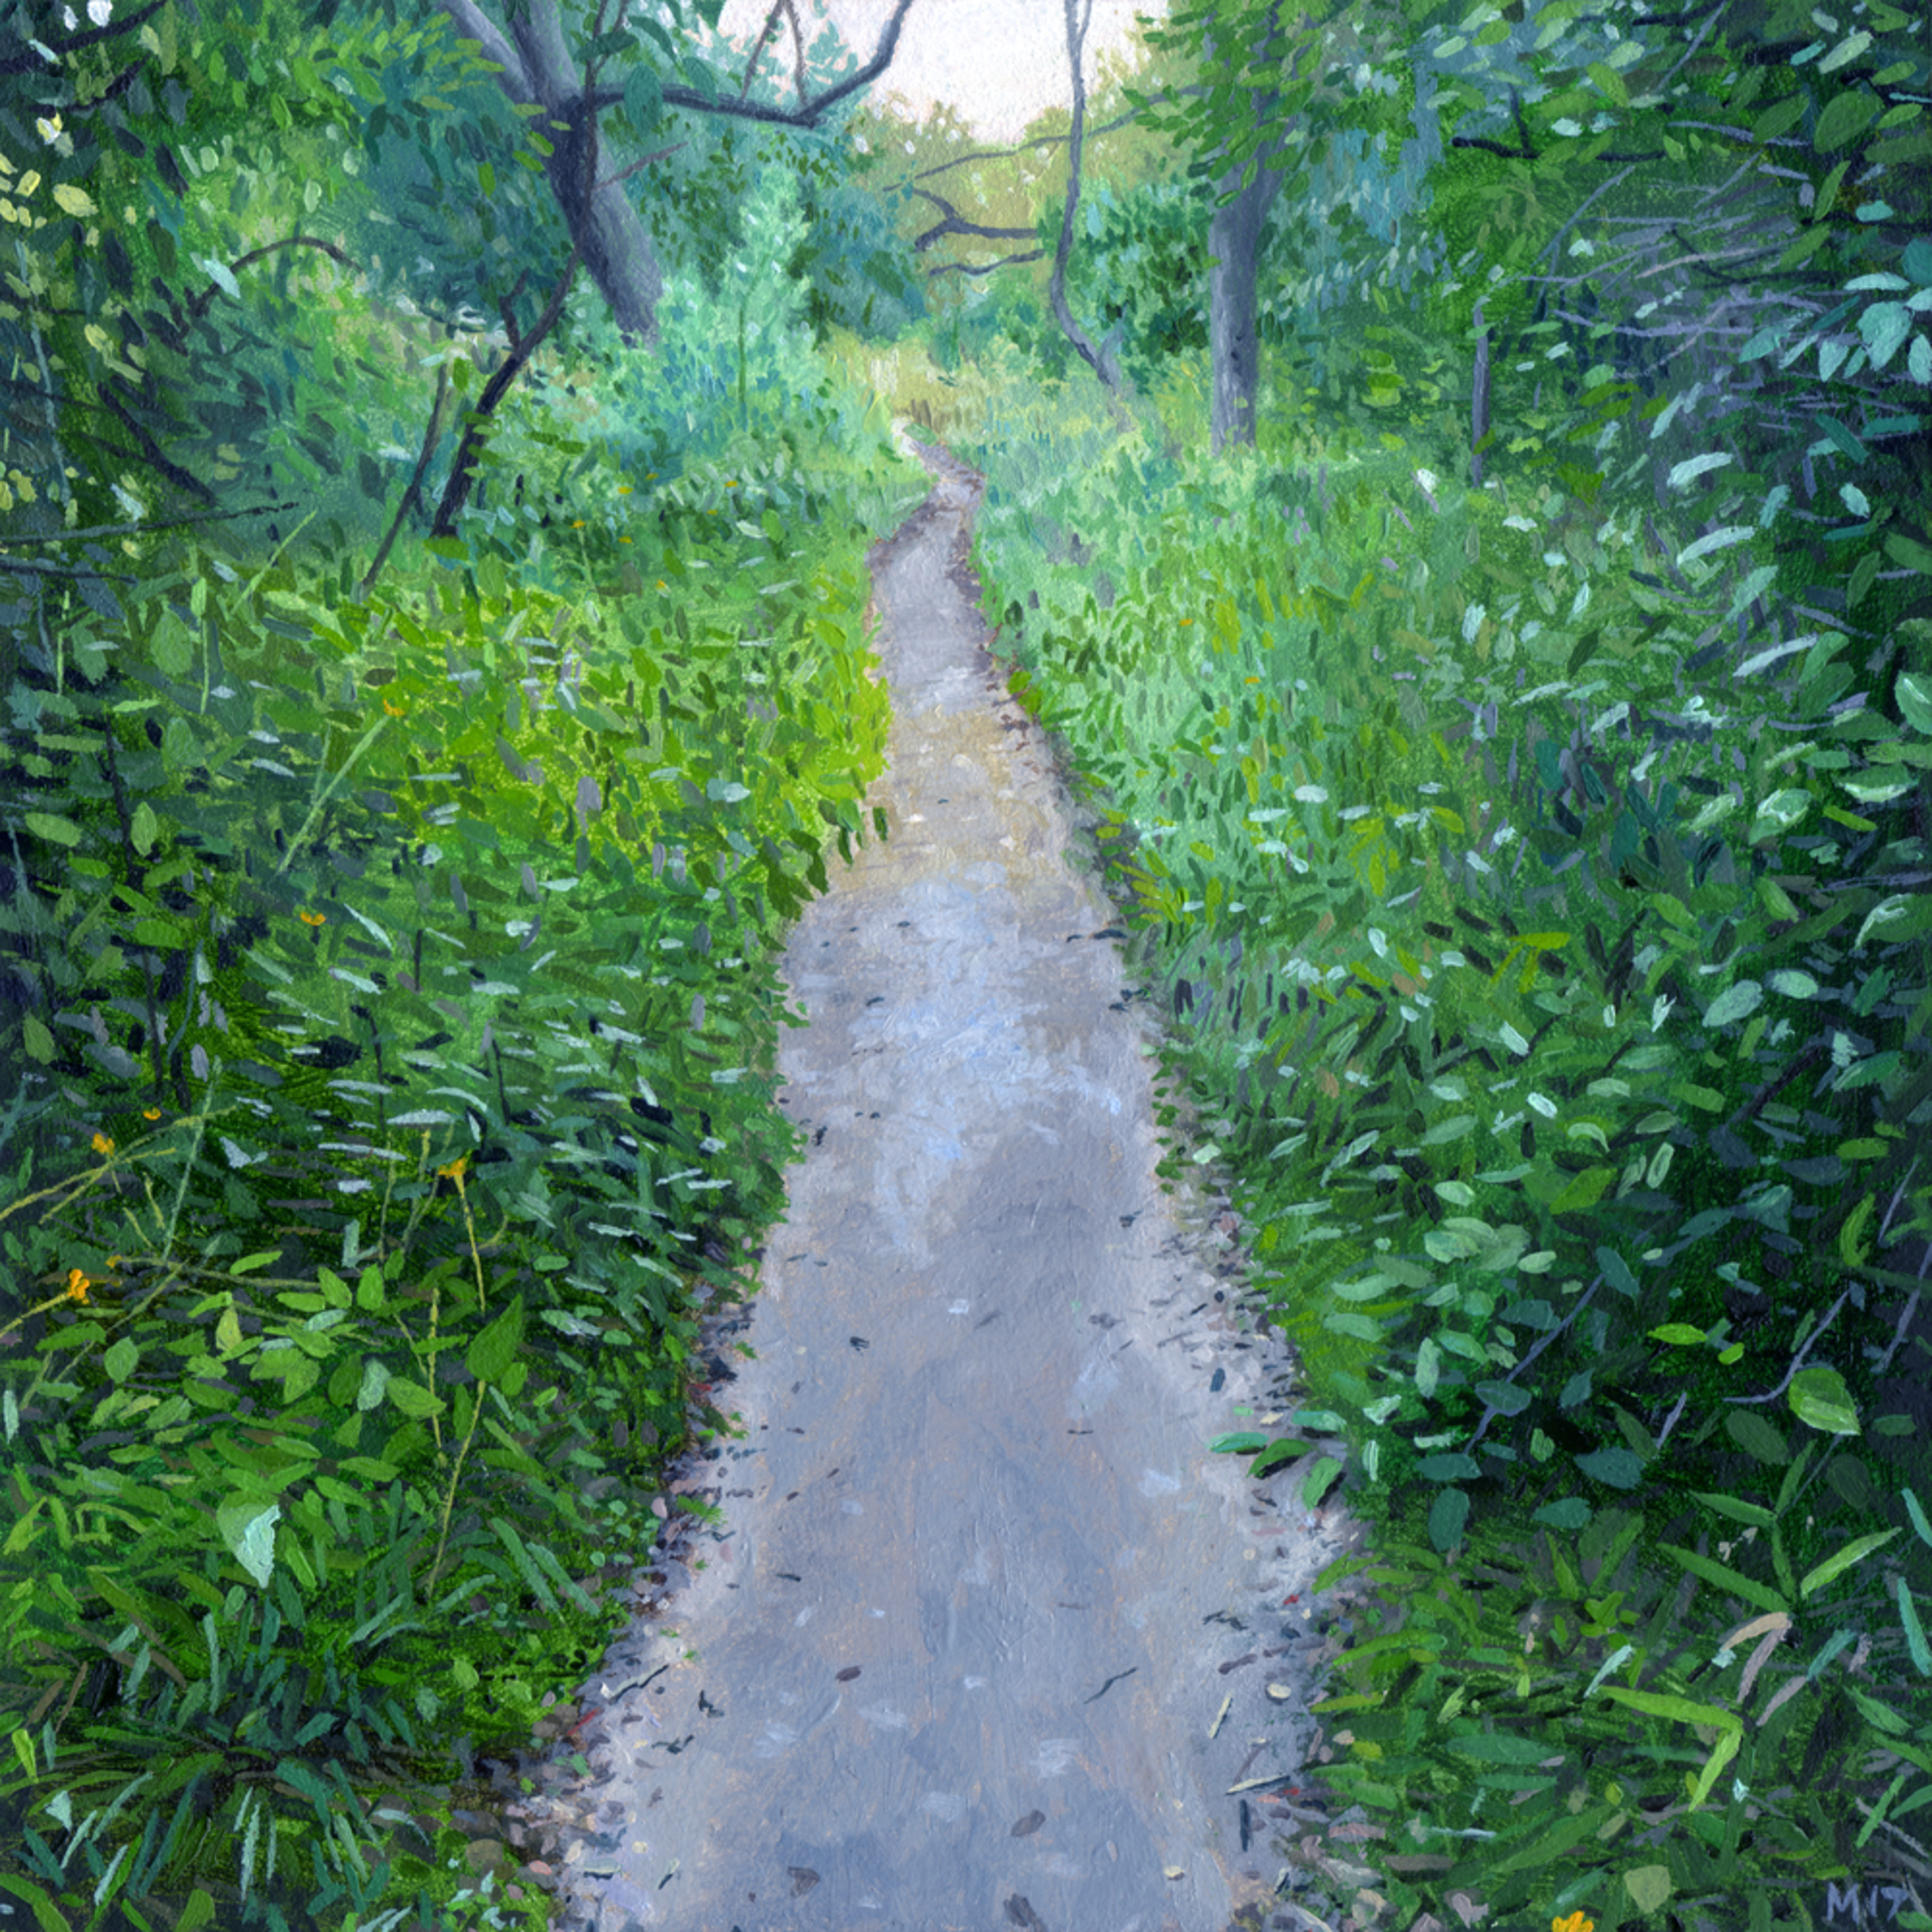 The path clean awfo7z